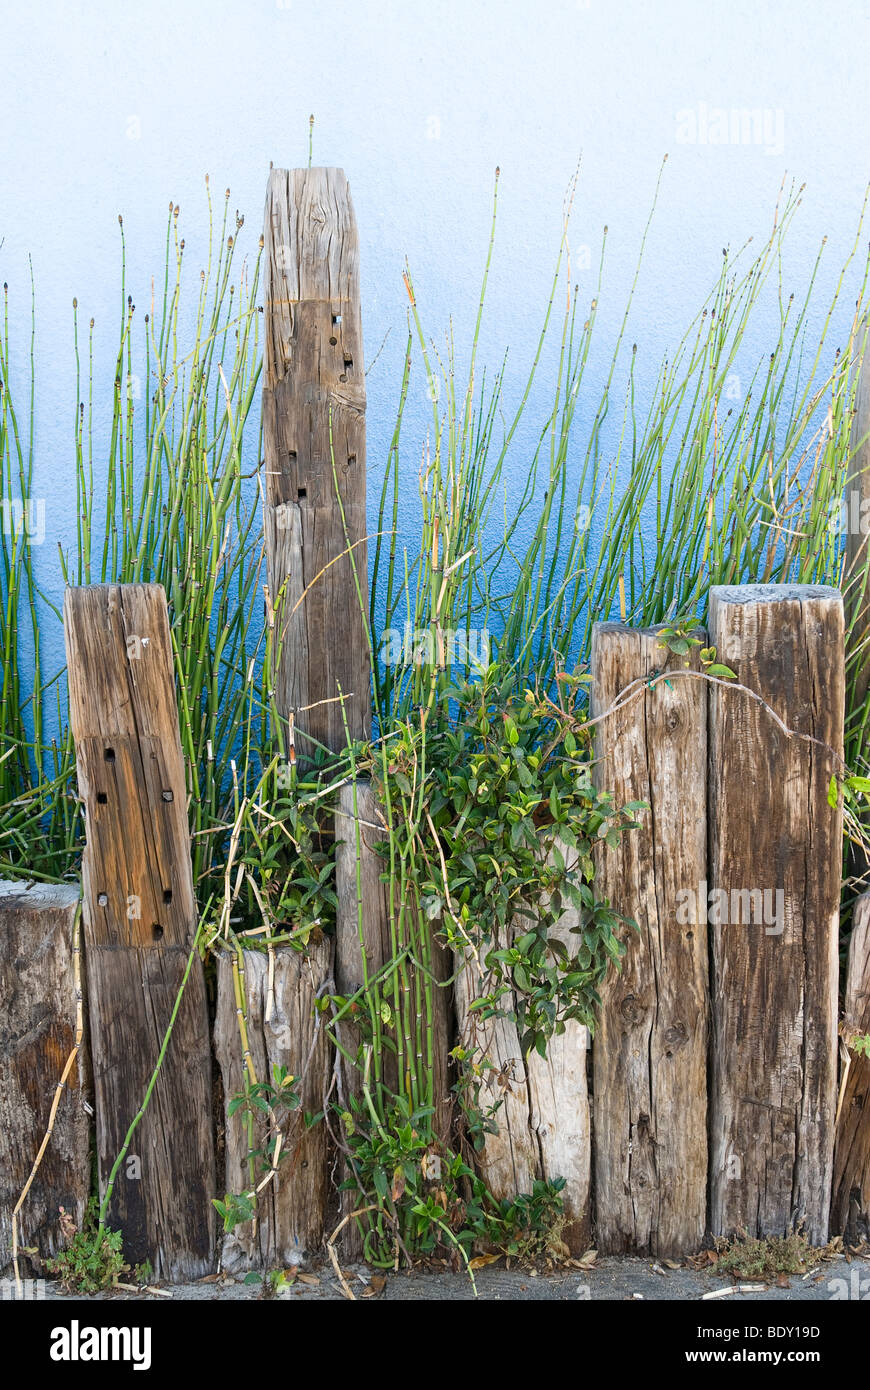 A planter of green shoots against a blue stucco wall supported by old wooden posts. - Stock Image